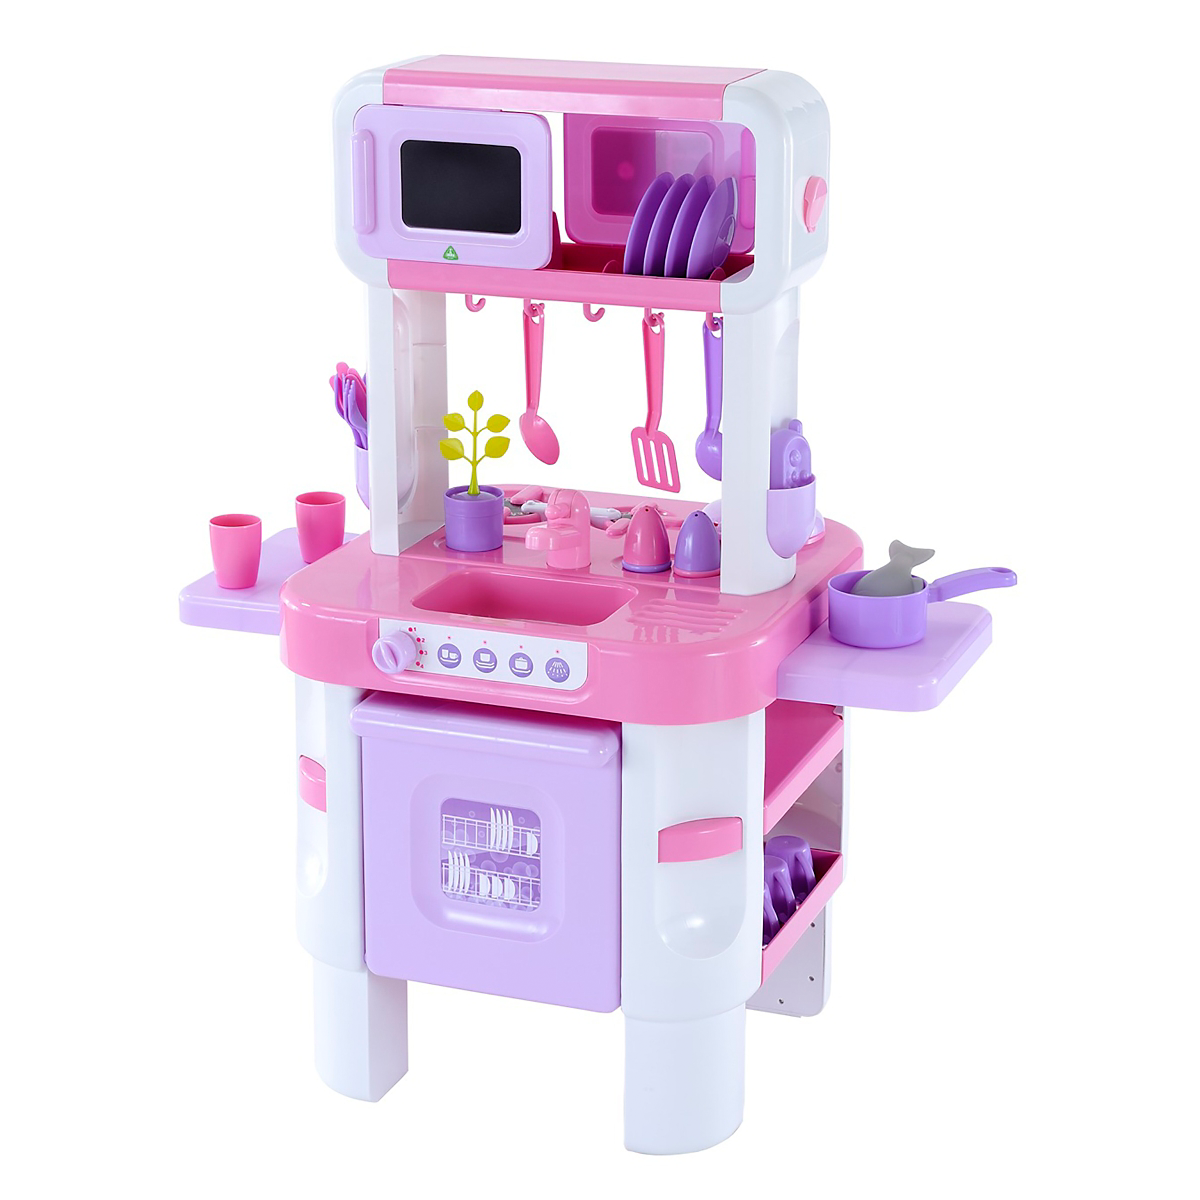 Early Learning Centre Little Cooks Kitchen - Pink from Early Learning Center